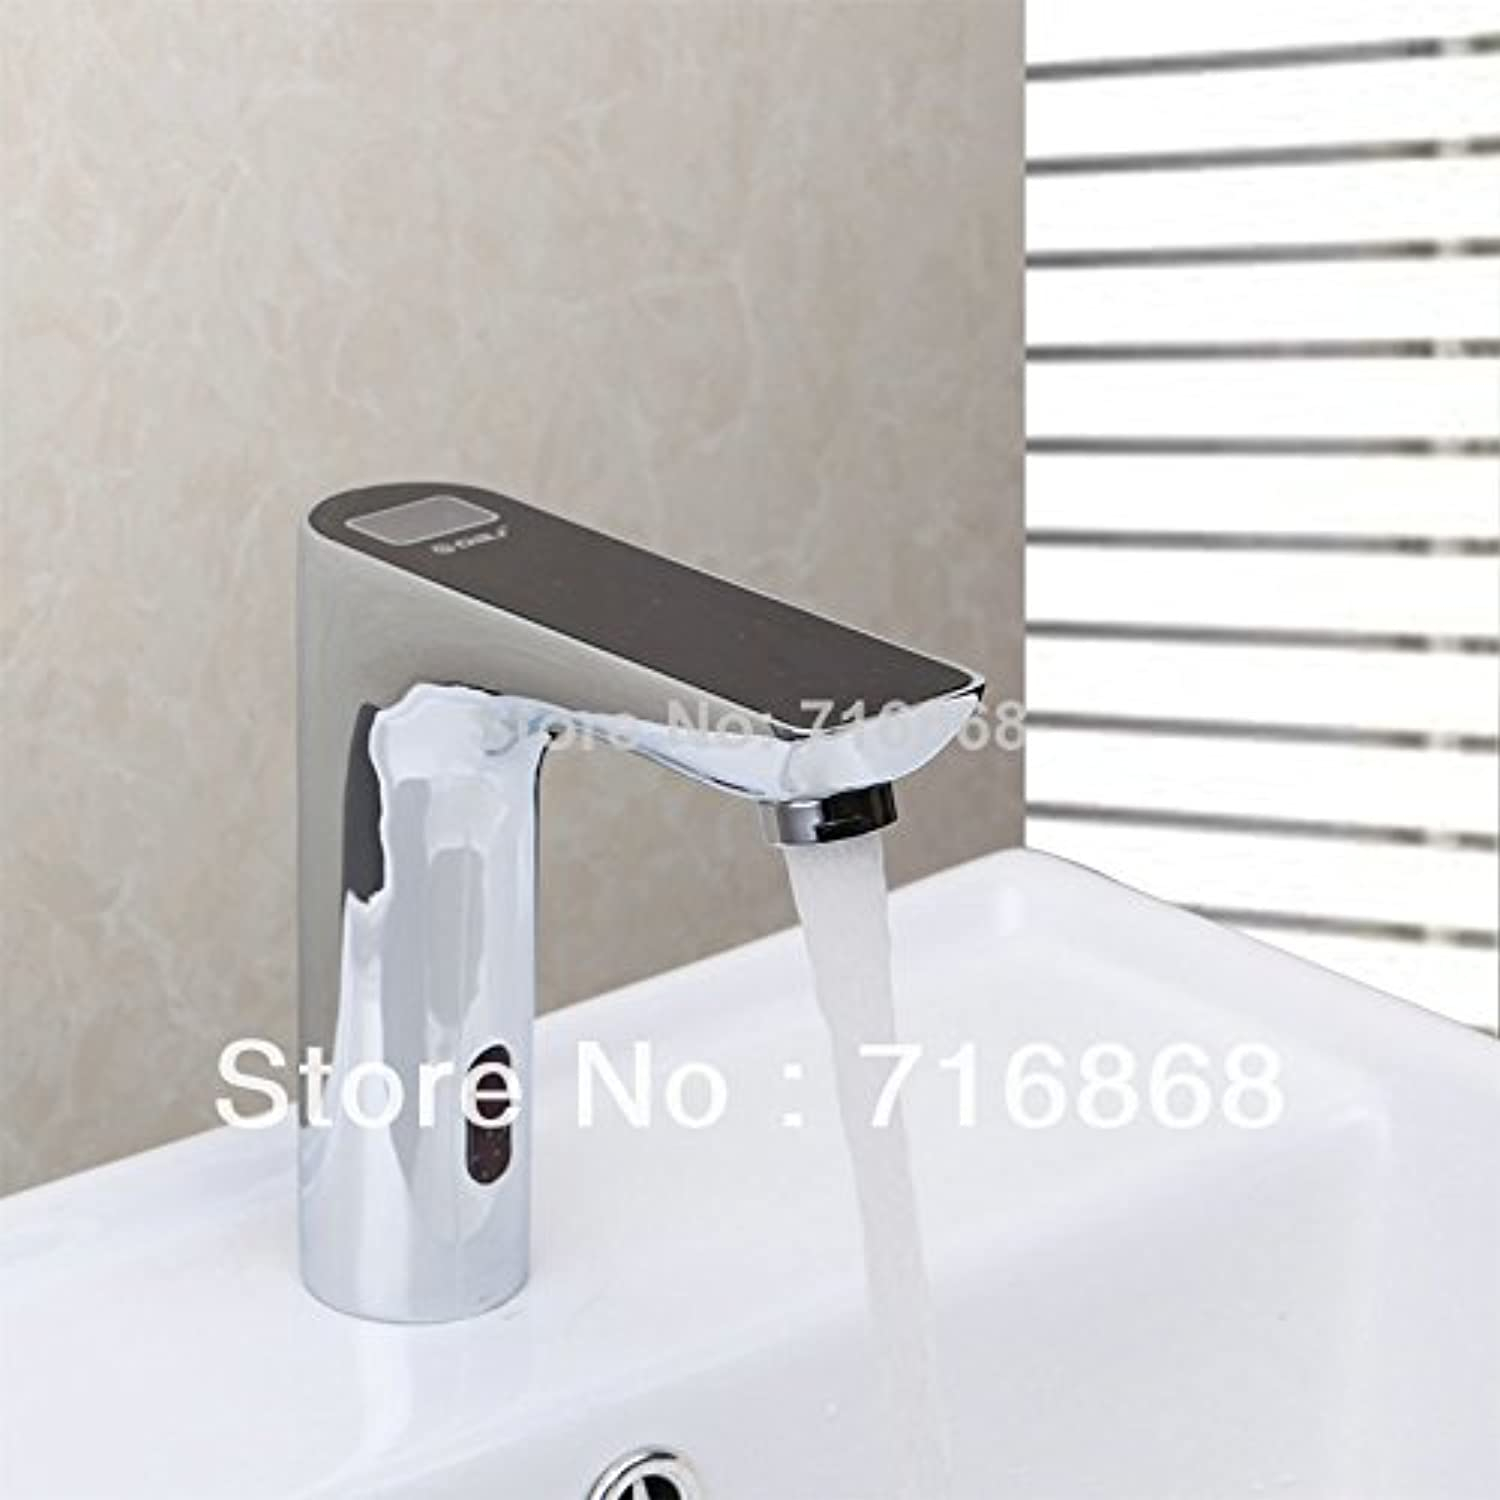 Jduskfl Kitchen Faucet Net Faucet Bathroom Faucet New Us Free Shipping Wholesale and Retail Wall Mount Bathroom Basin Sink Faucet Waterfall Two Holes Single Handle Chrome Finish,Brass,Red